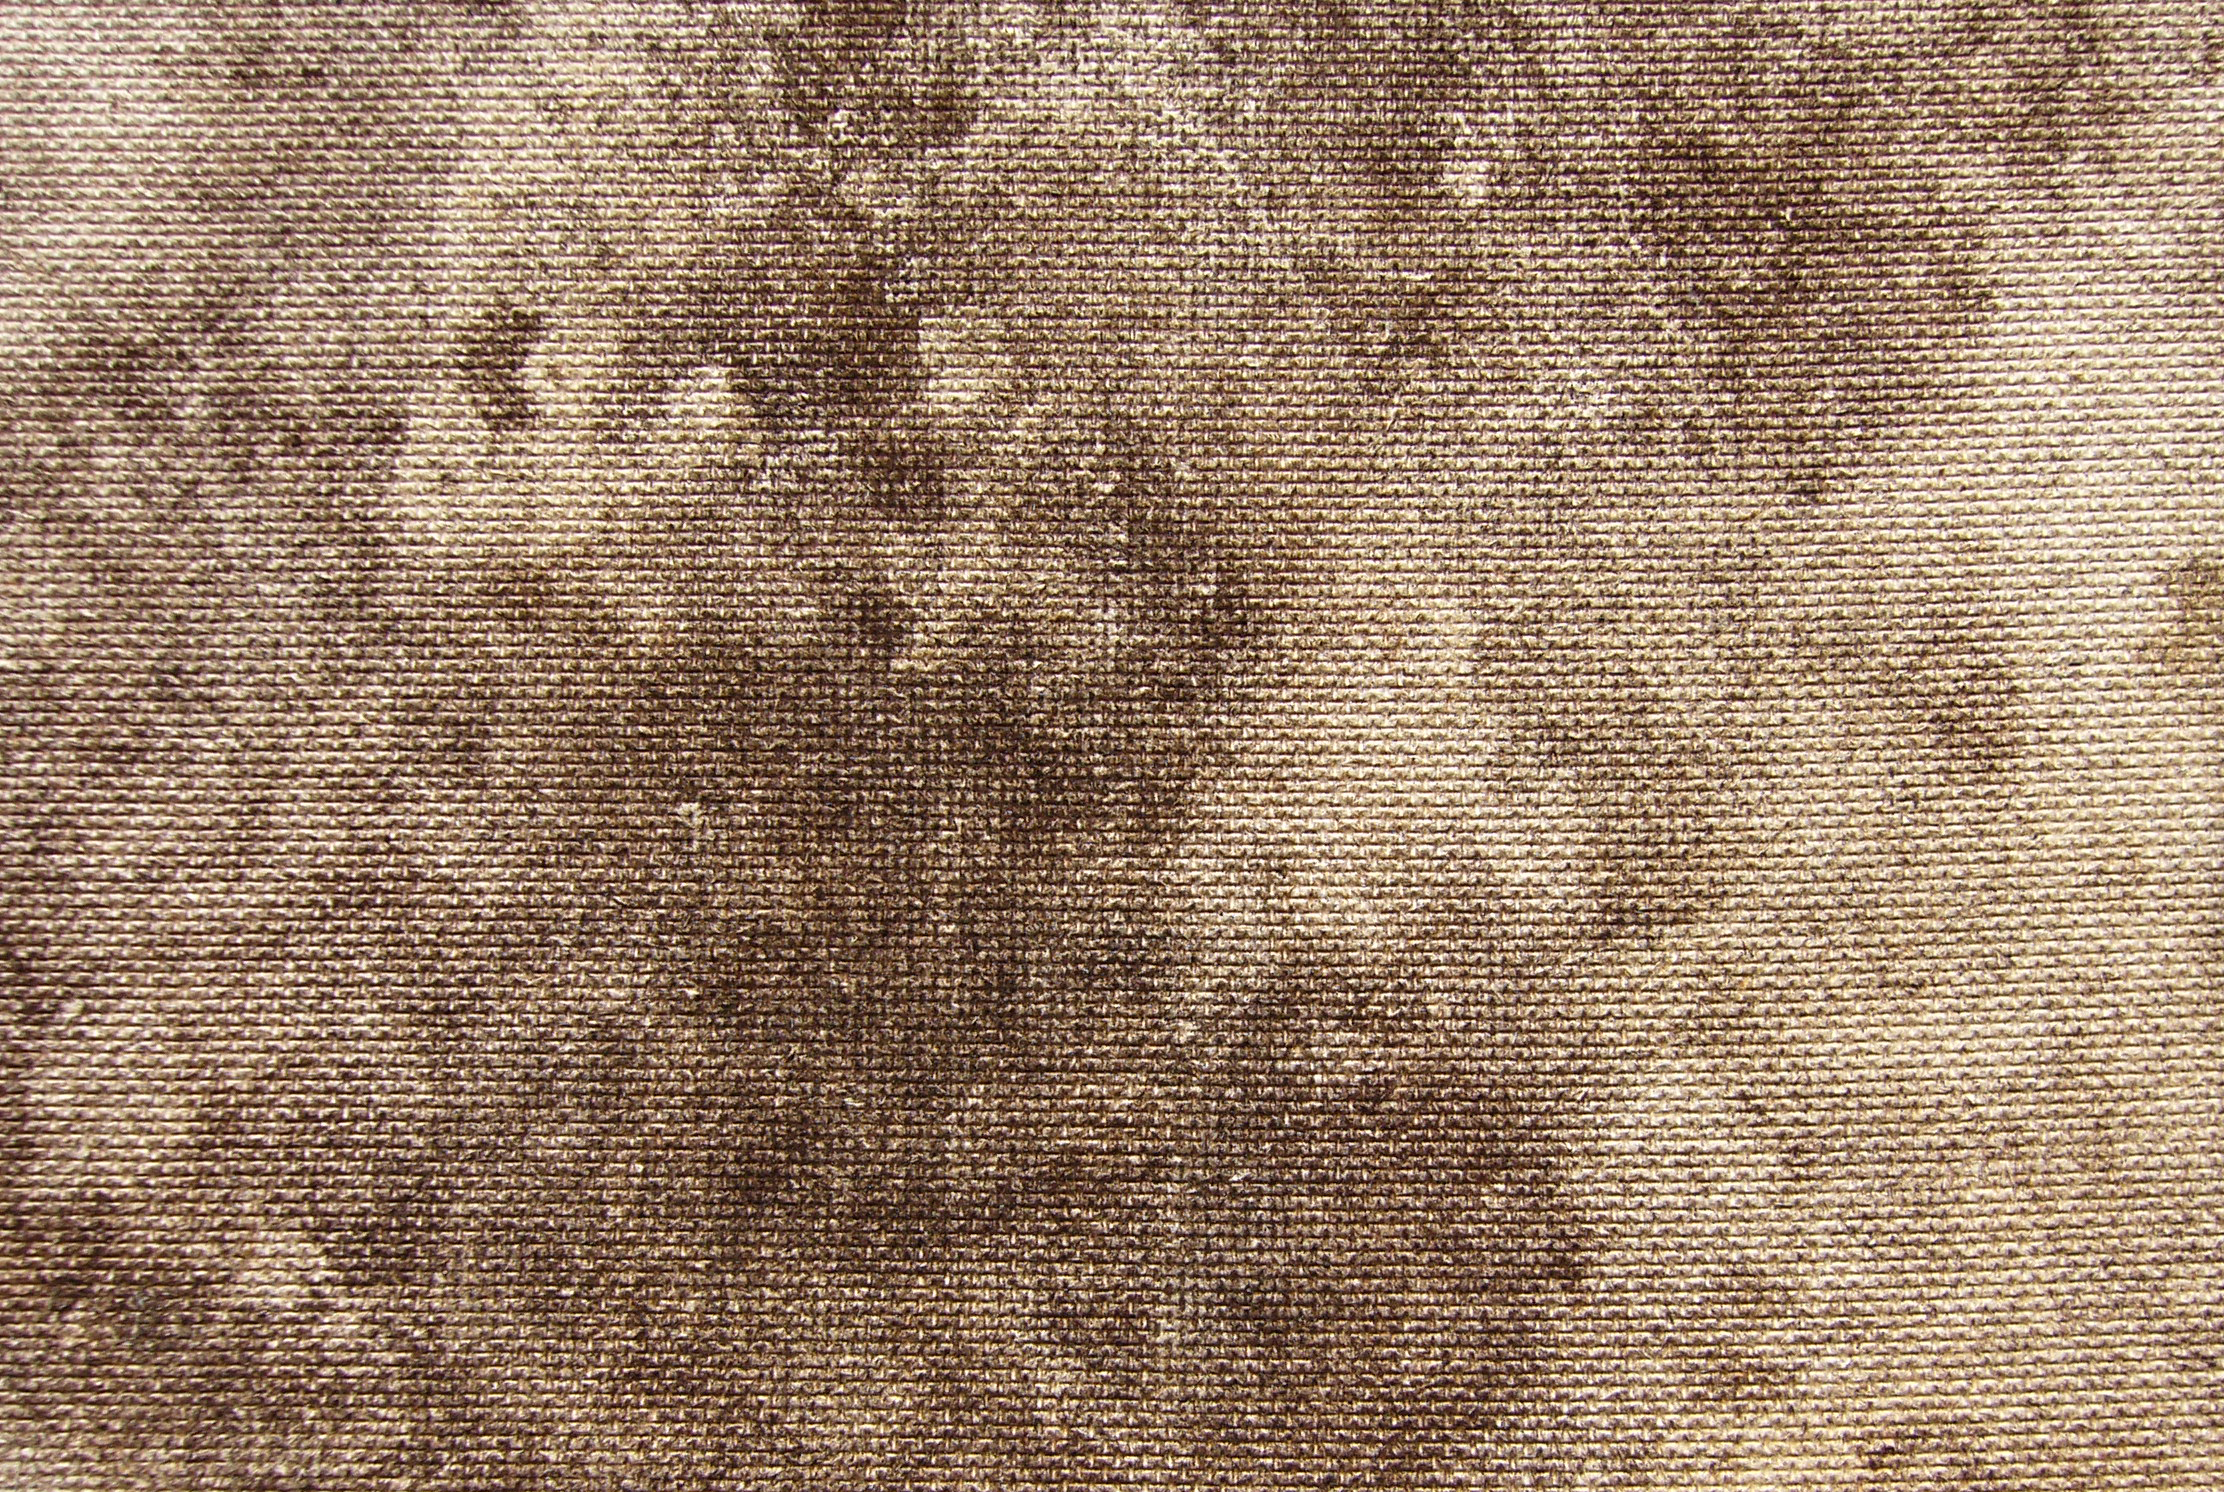 Grunge / Wood texture (venner, brown, fiber)